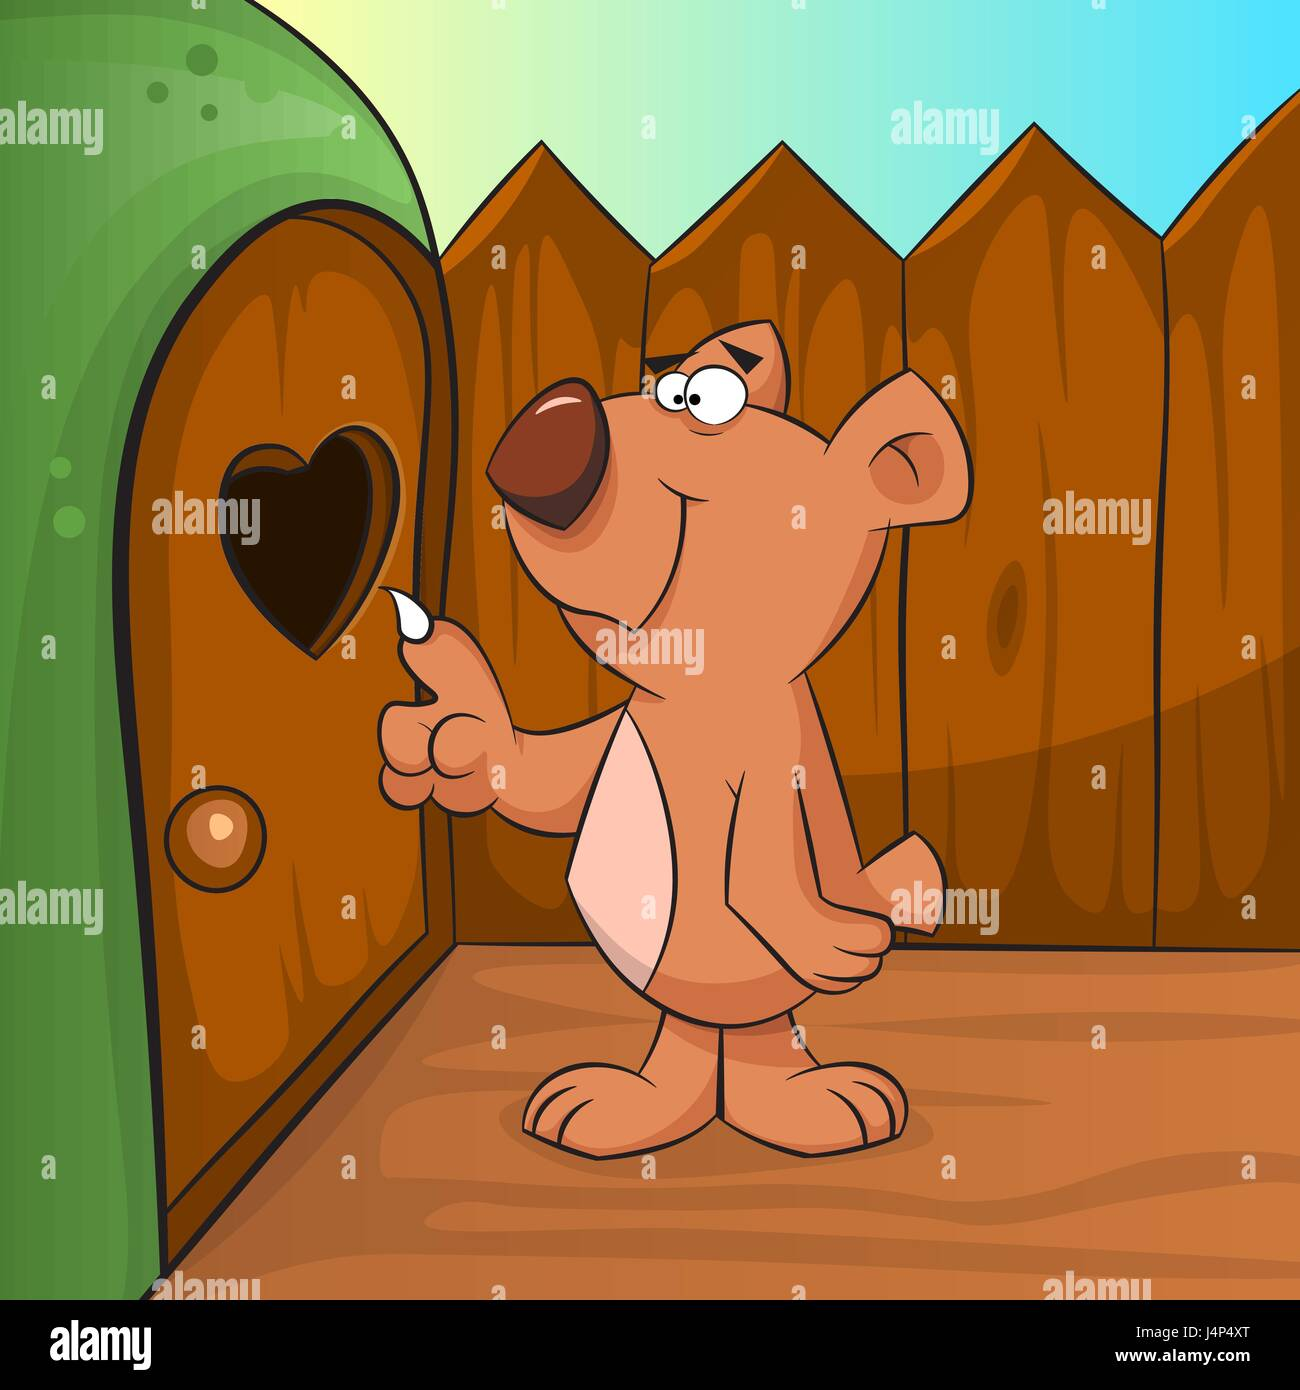 Cute brown bear knocking into the den. - Stock Image